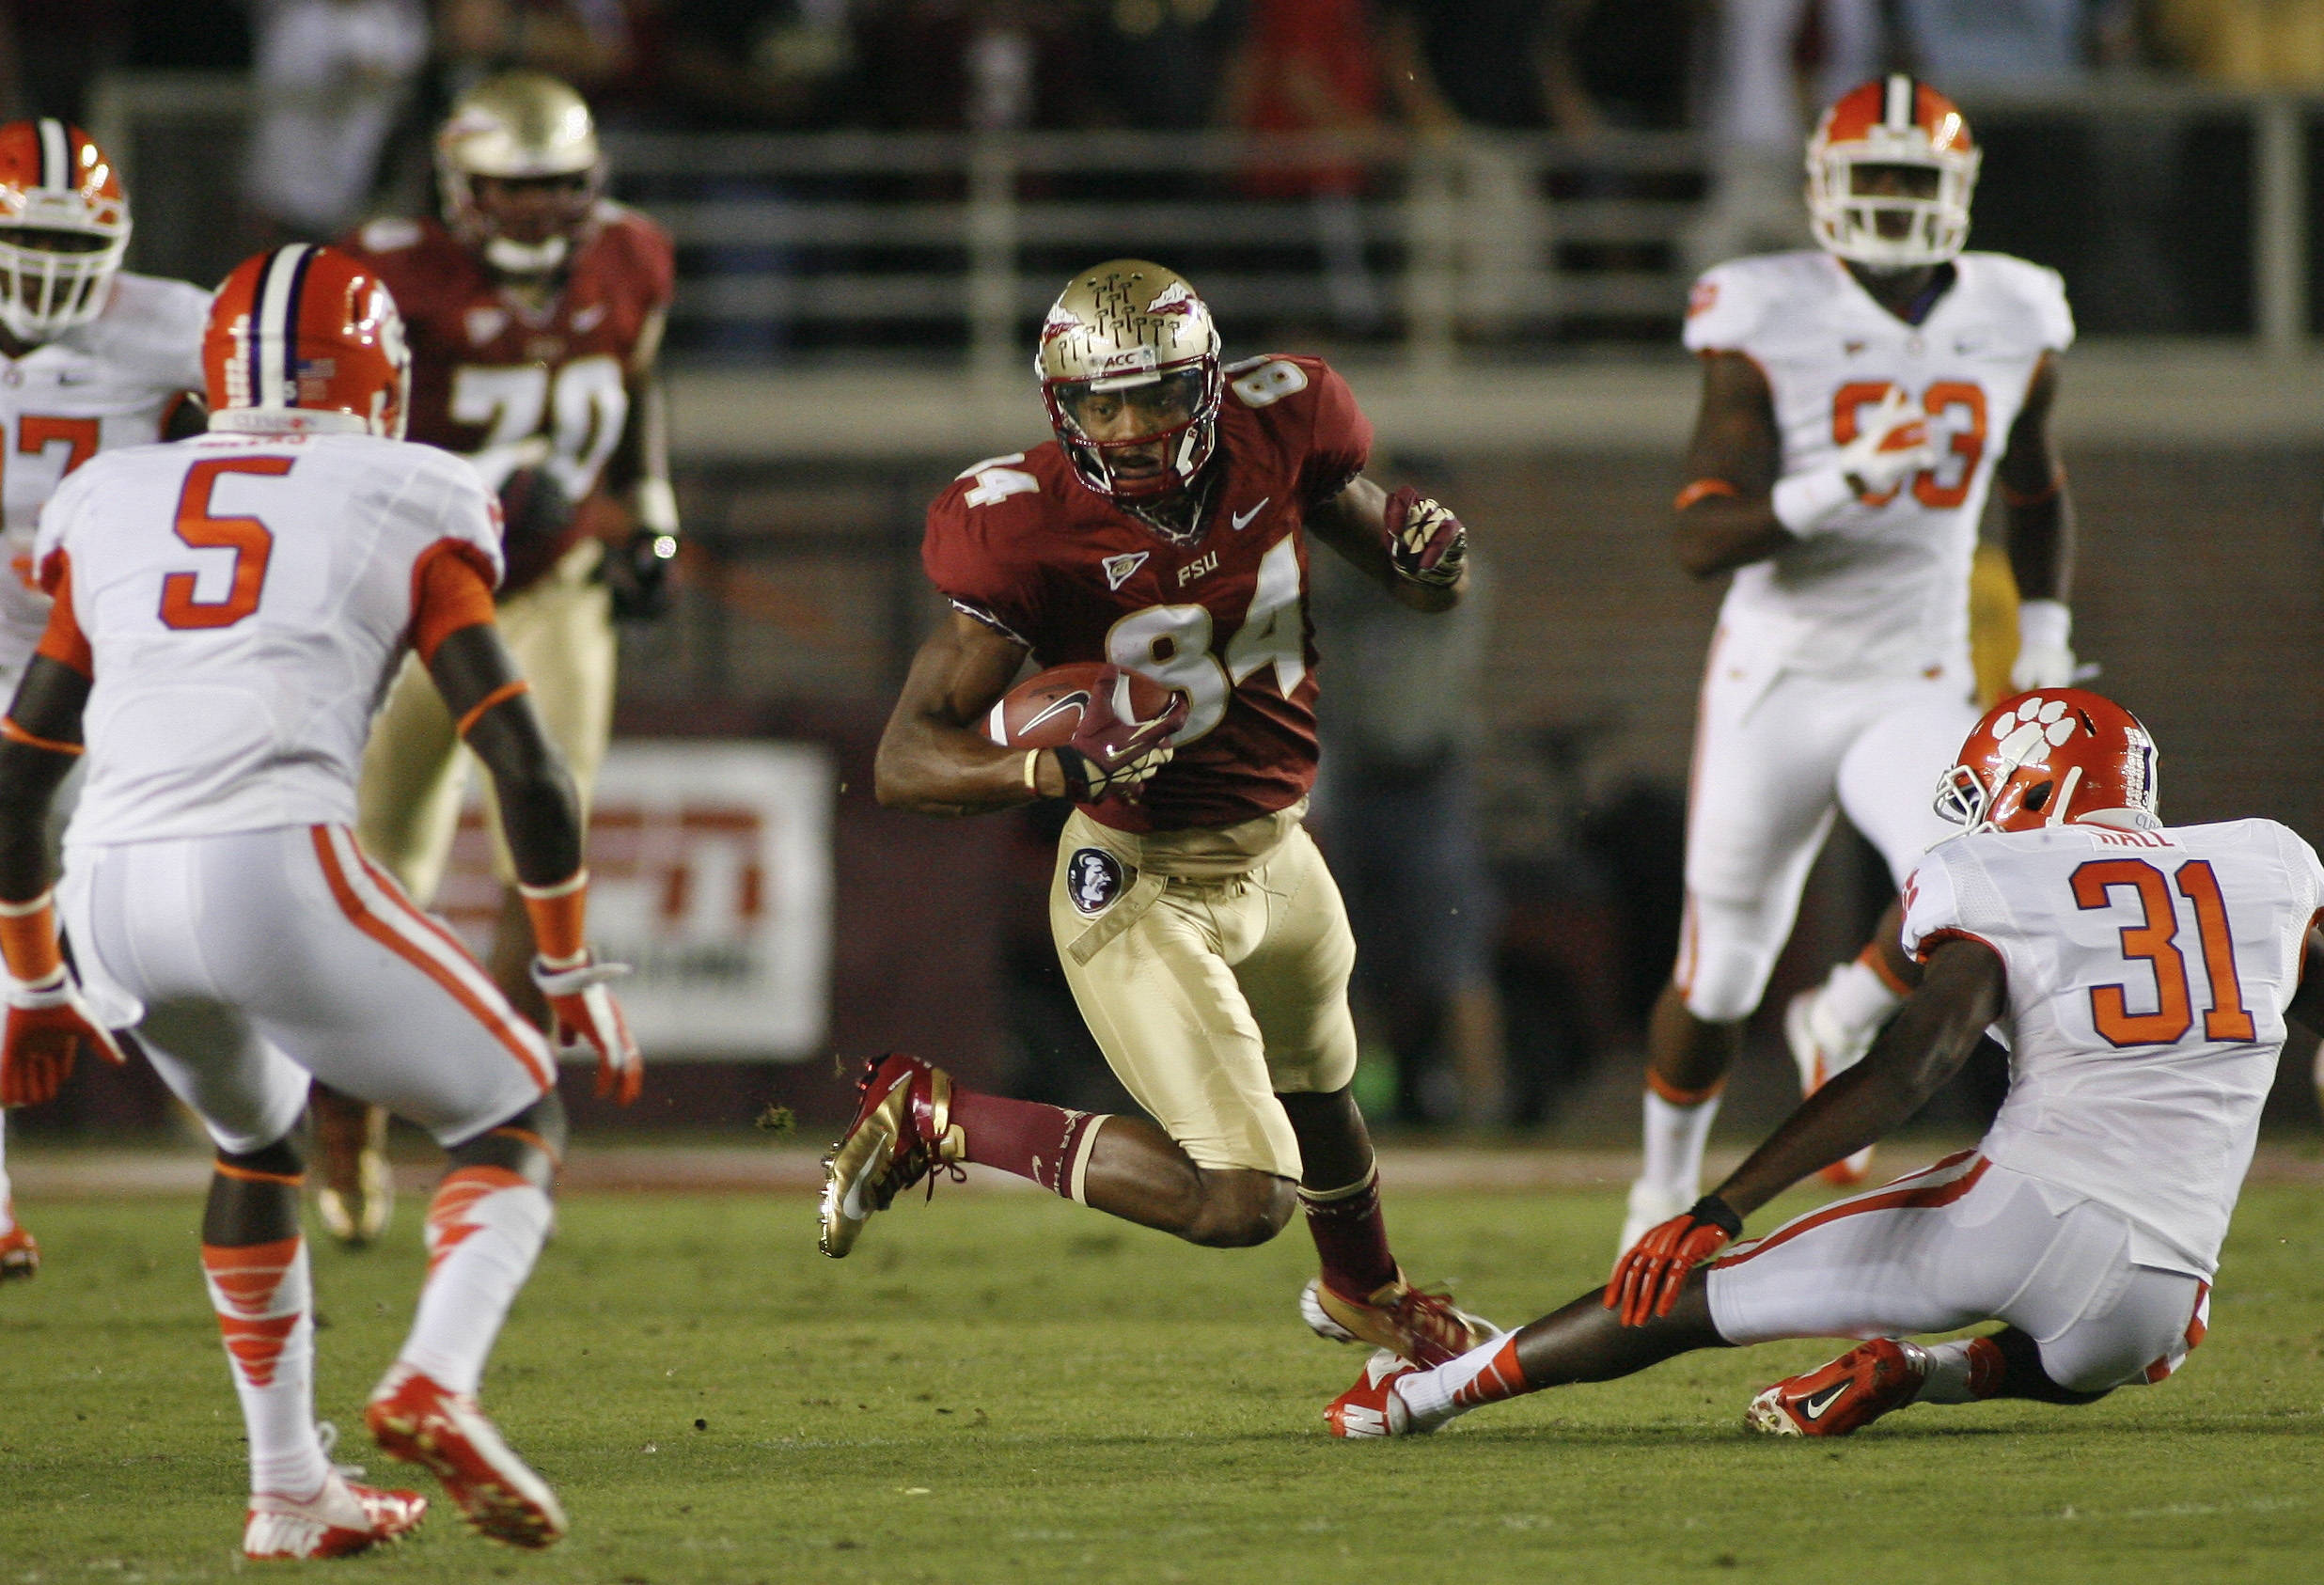 Florida State wide receiver Rodney Smith (84) runs on a 19-yard reception. (AP Photo/Phil Sears)